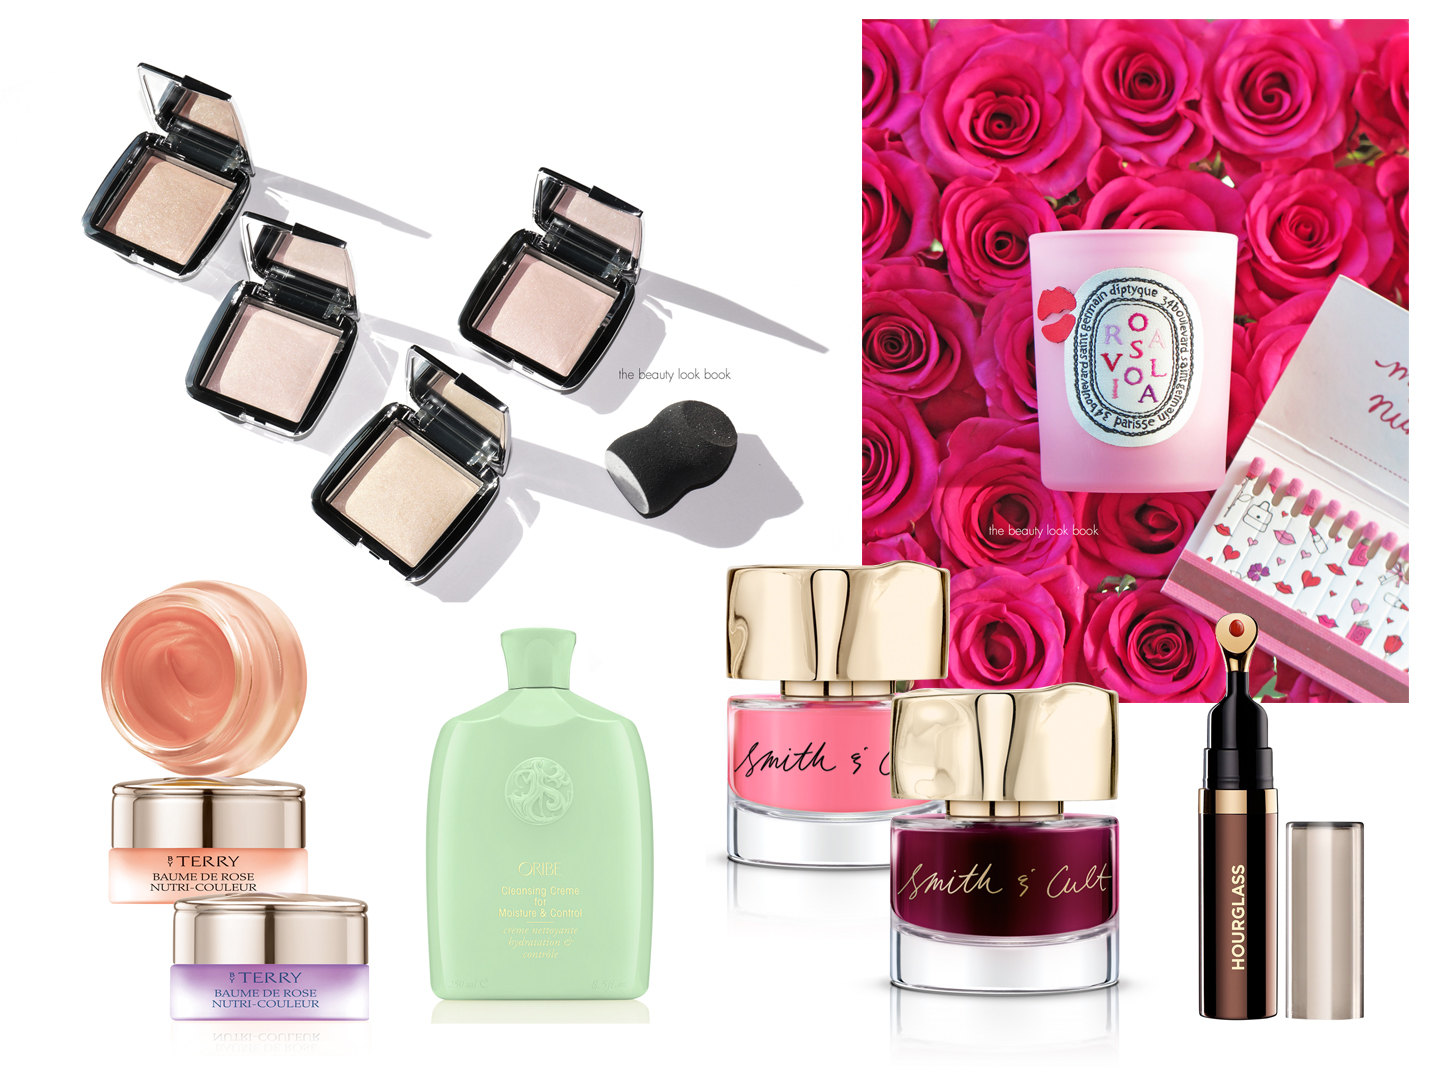 Space NK Spring Beauty Edit Gift With Purchase Event - February 11th ...